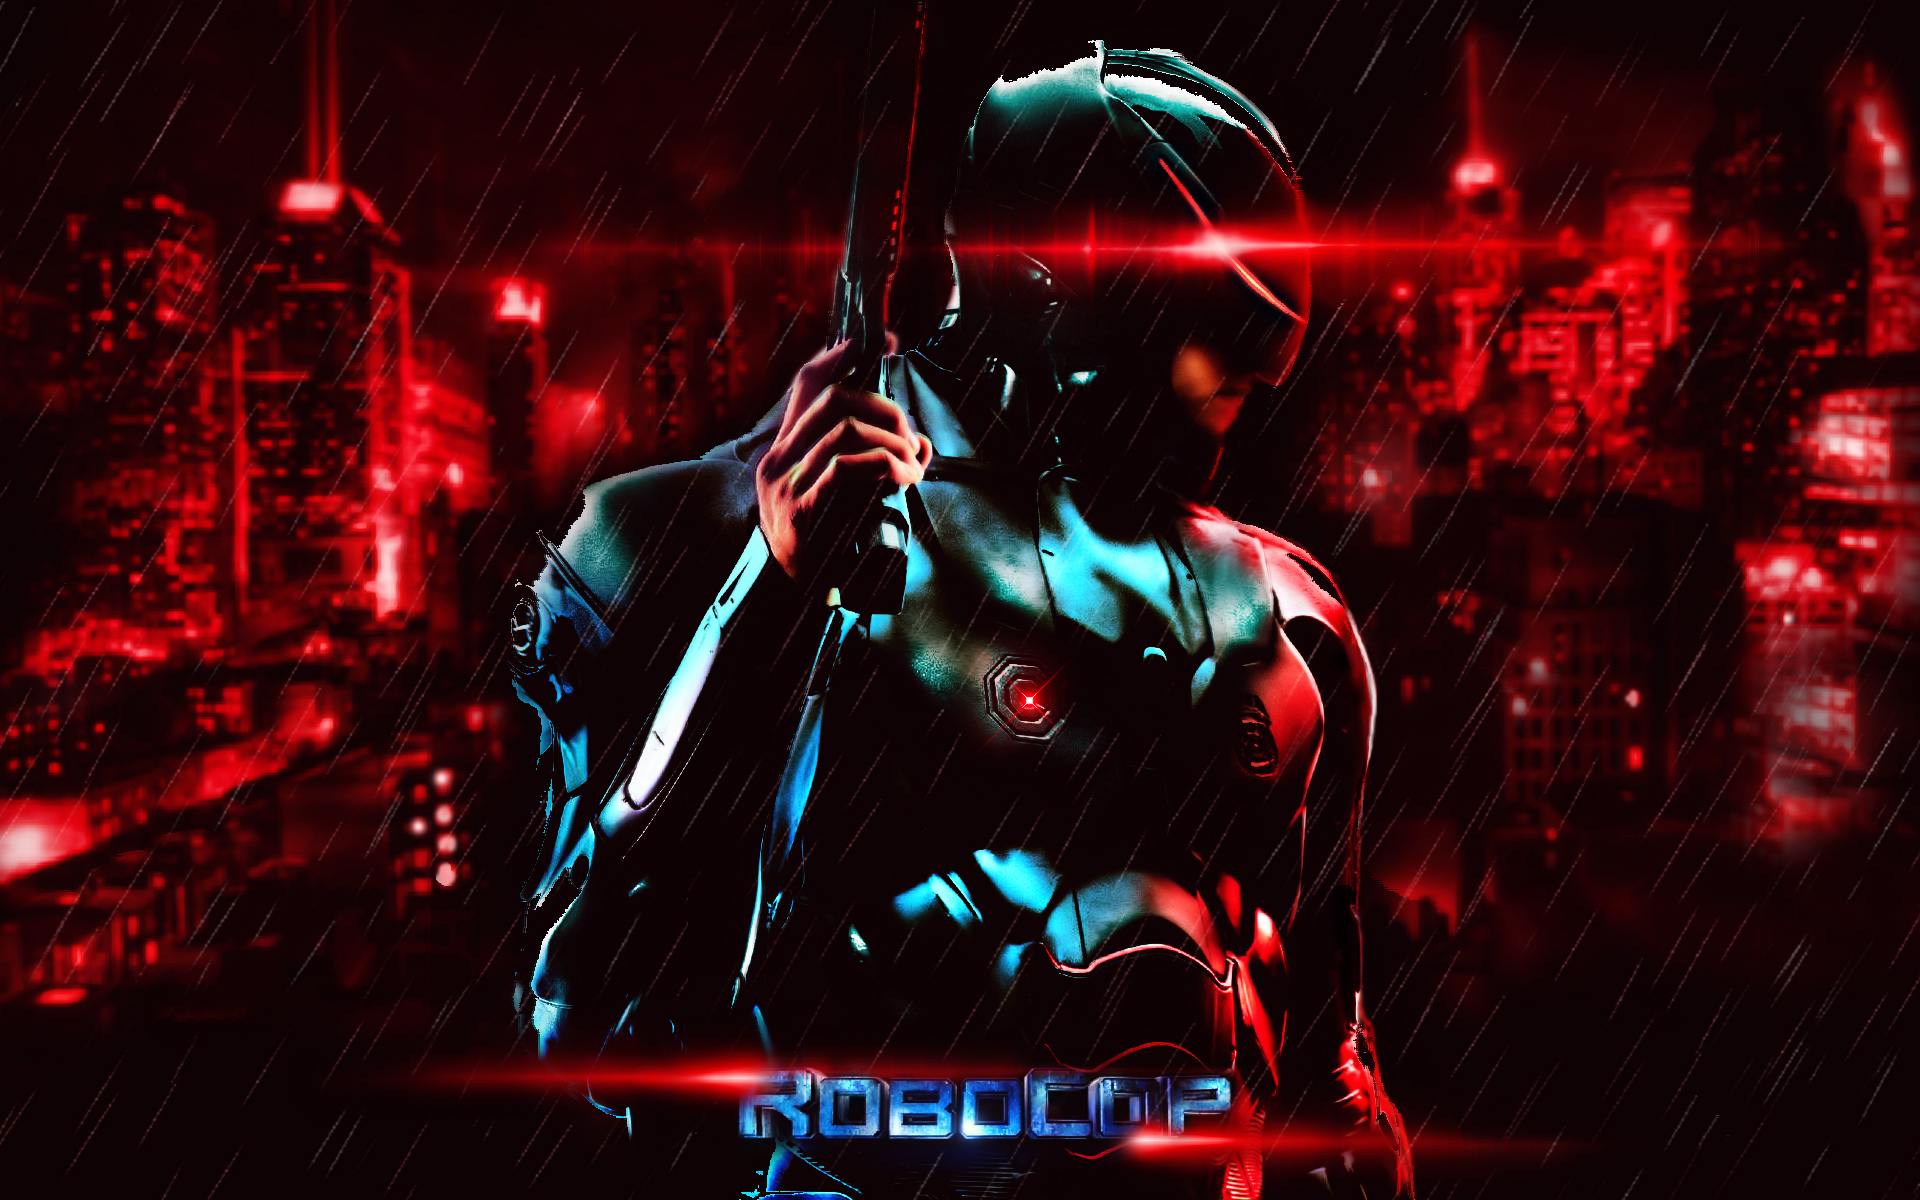 Sci Fi Iphone Wallpaper Robocop Full Hd Wallpaper And Background Image 1920x1200